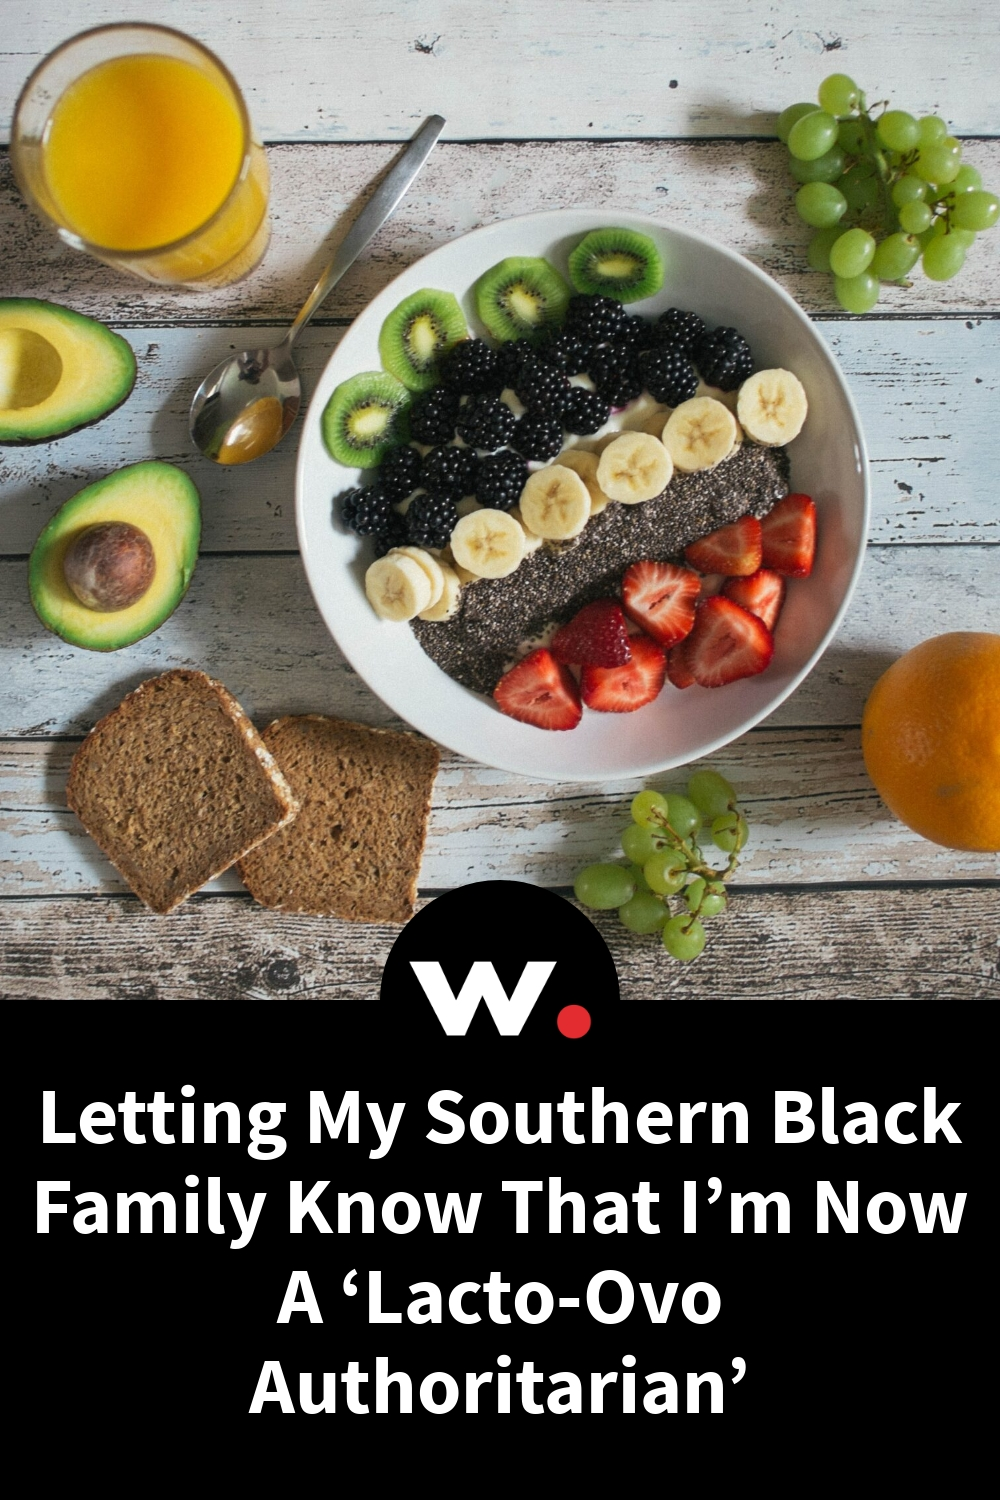 Letting My Southern Black Family Know That I'm Now A 'Lacto-Ovo Authoritarian'